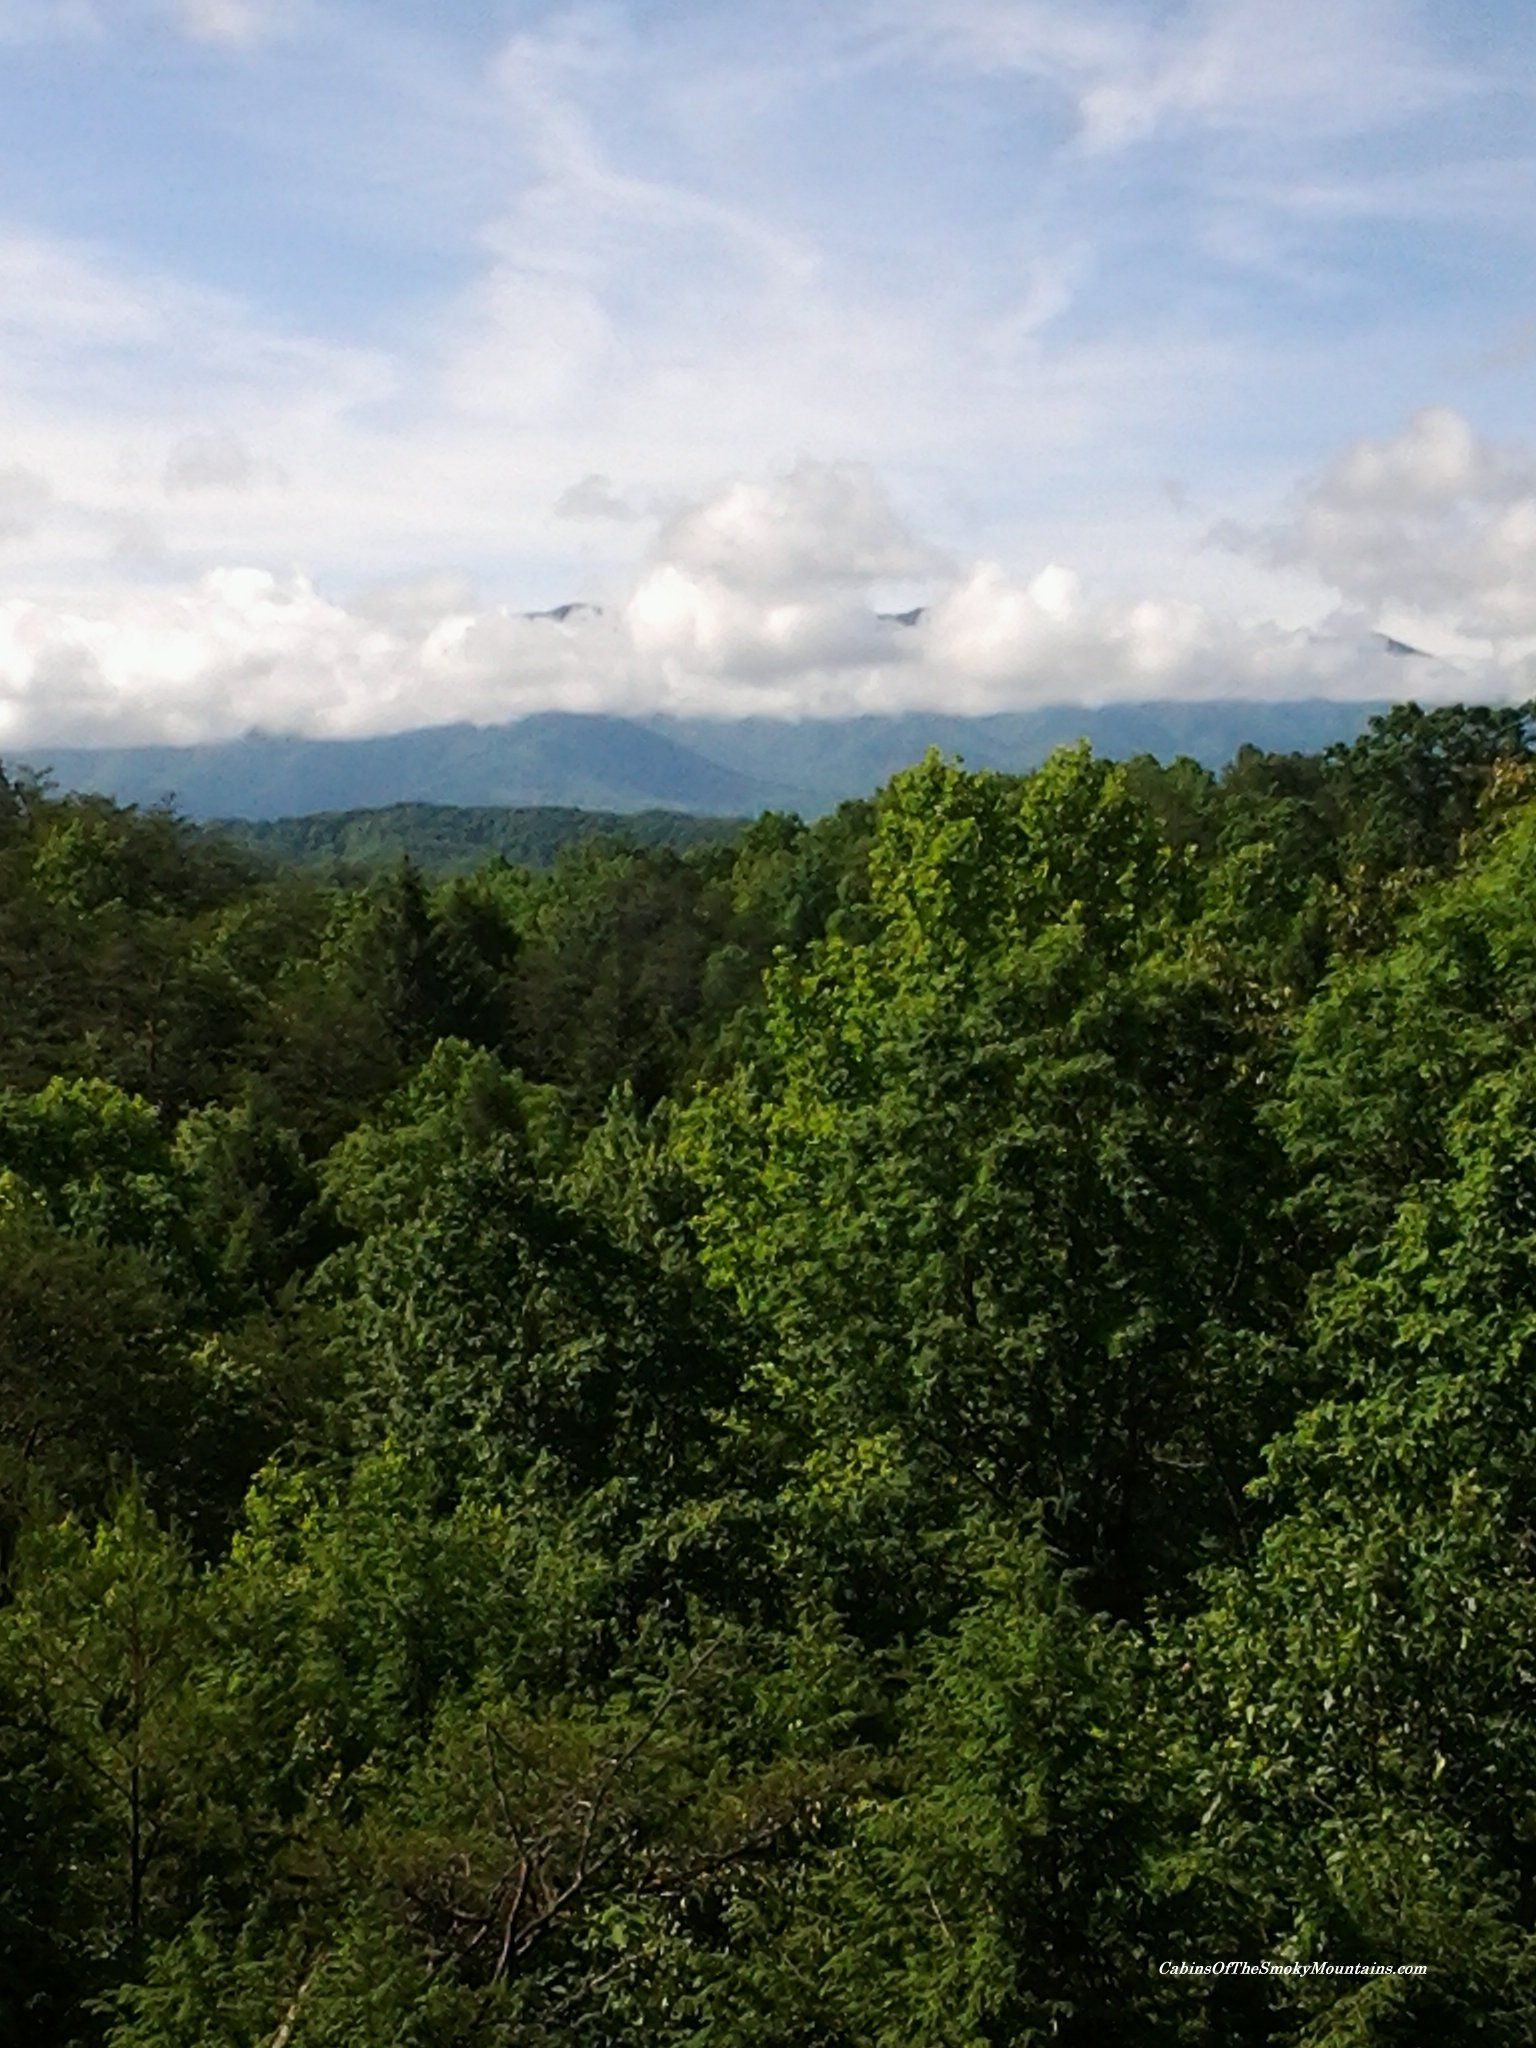 Jacuzzi in master bedroom  Mountains peeking from behind the clouds  view from a Pigeon Forge